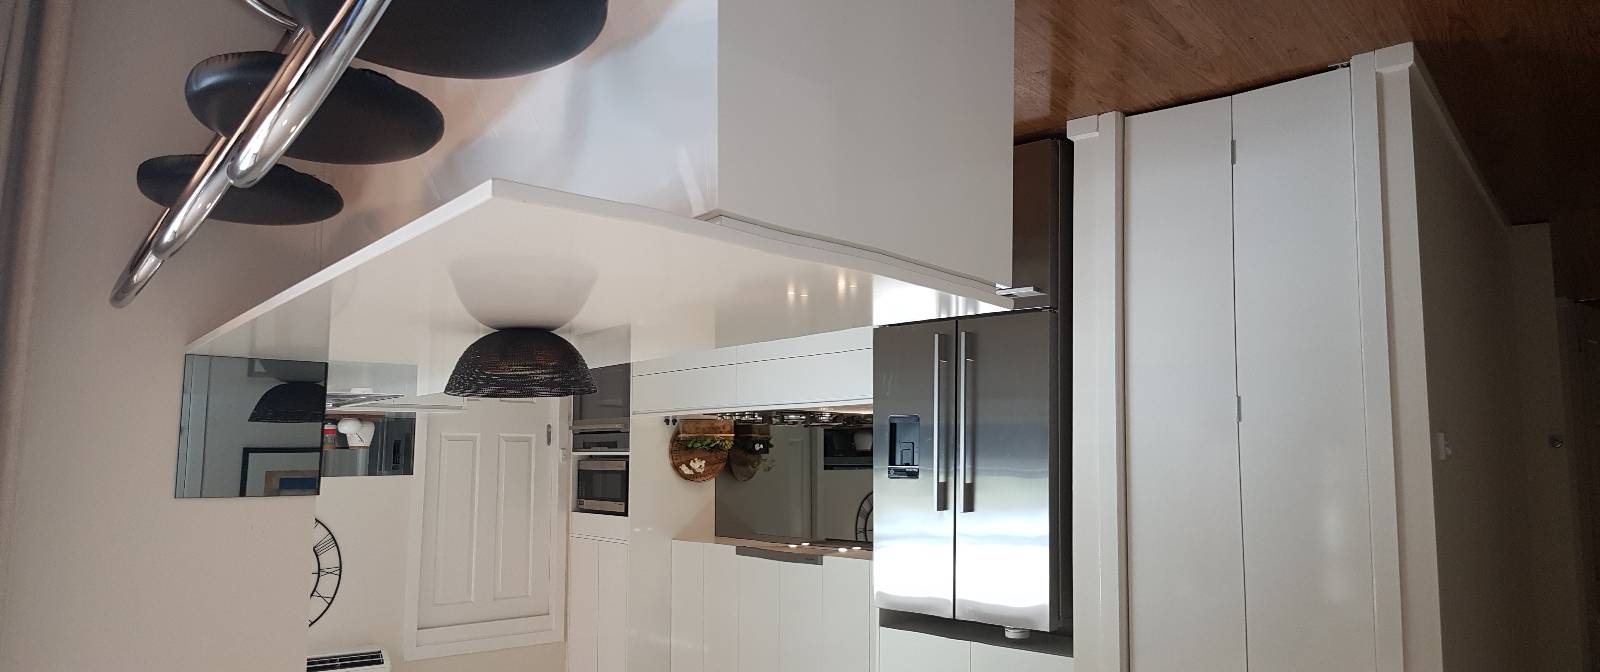 Thoughts on mirrored glass splashback